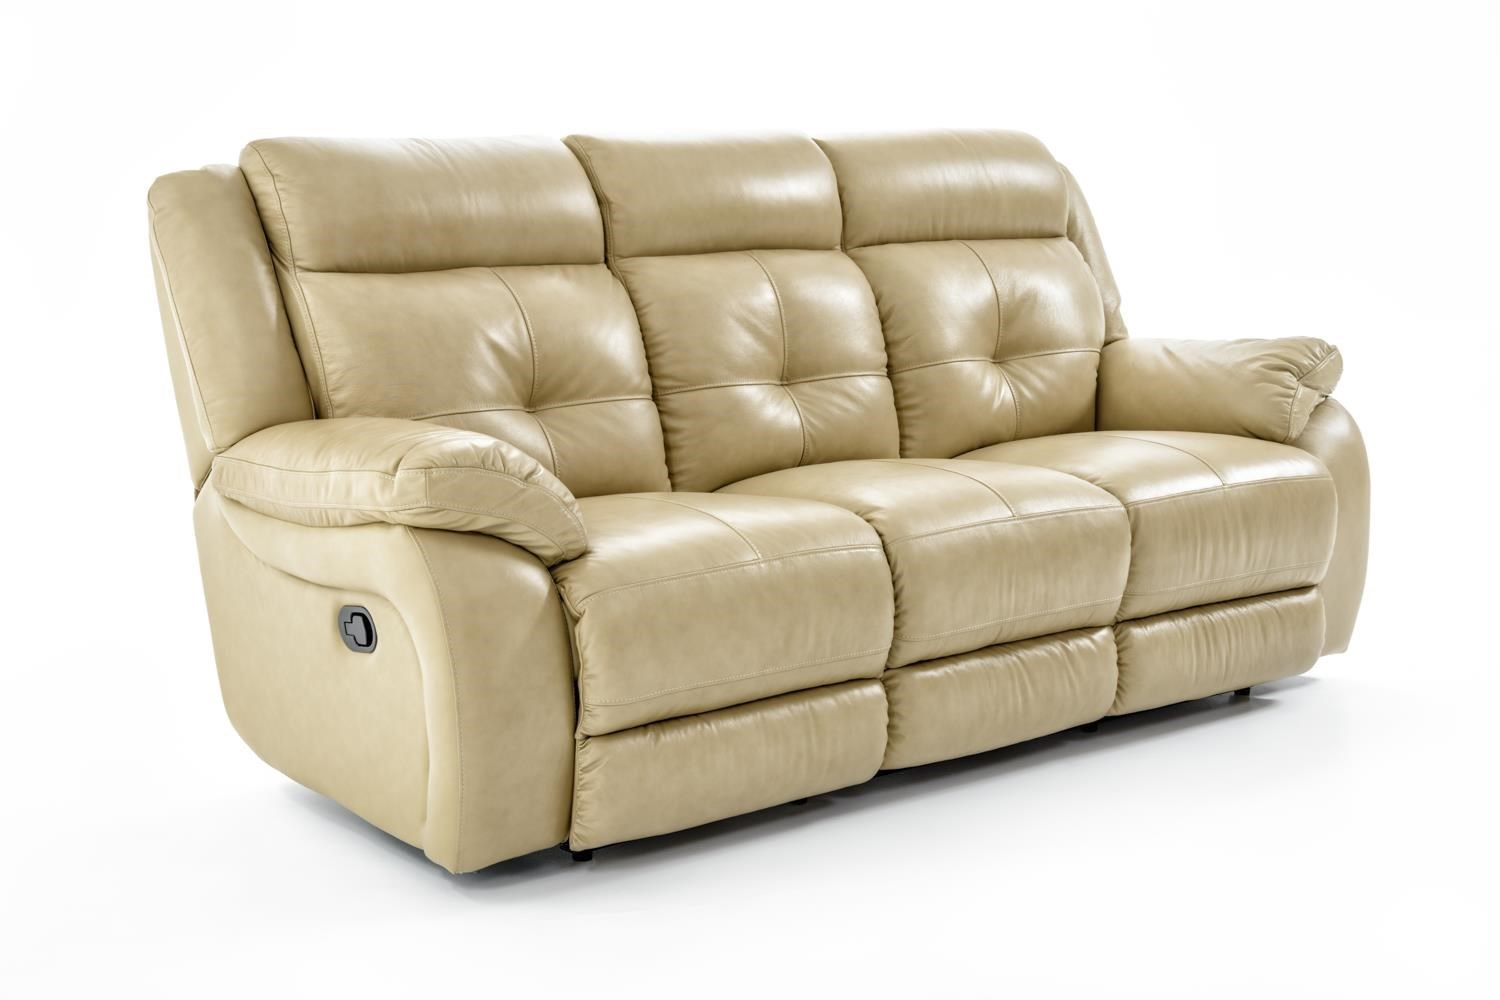 Futura Leather M771 M771 83 1288H CHESAPEAKE Casual Dual Reclining Sofa